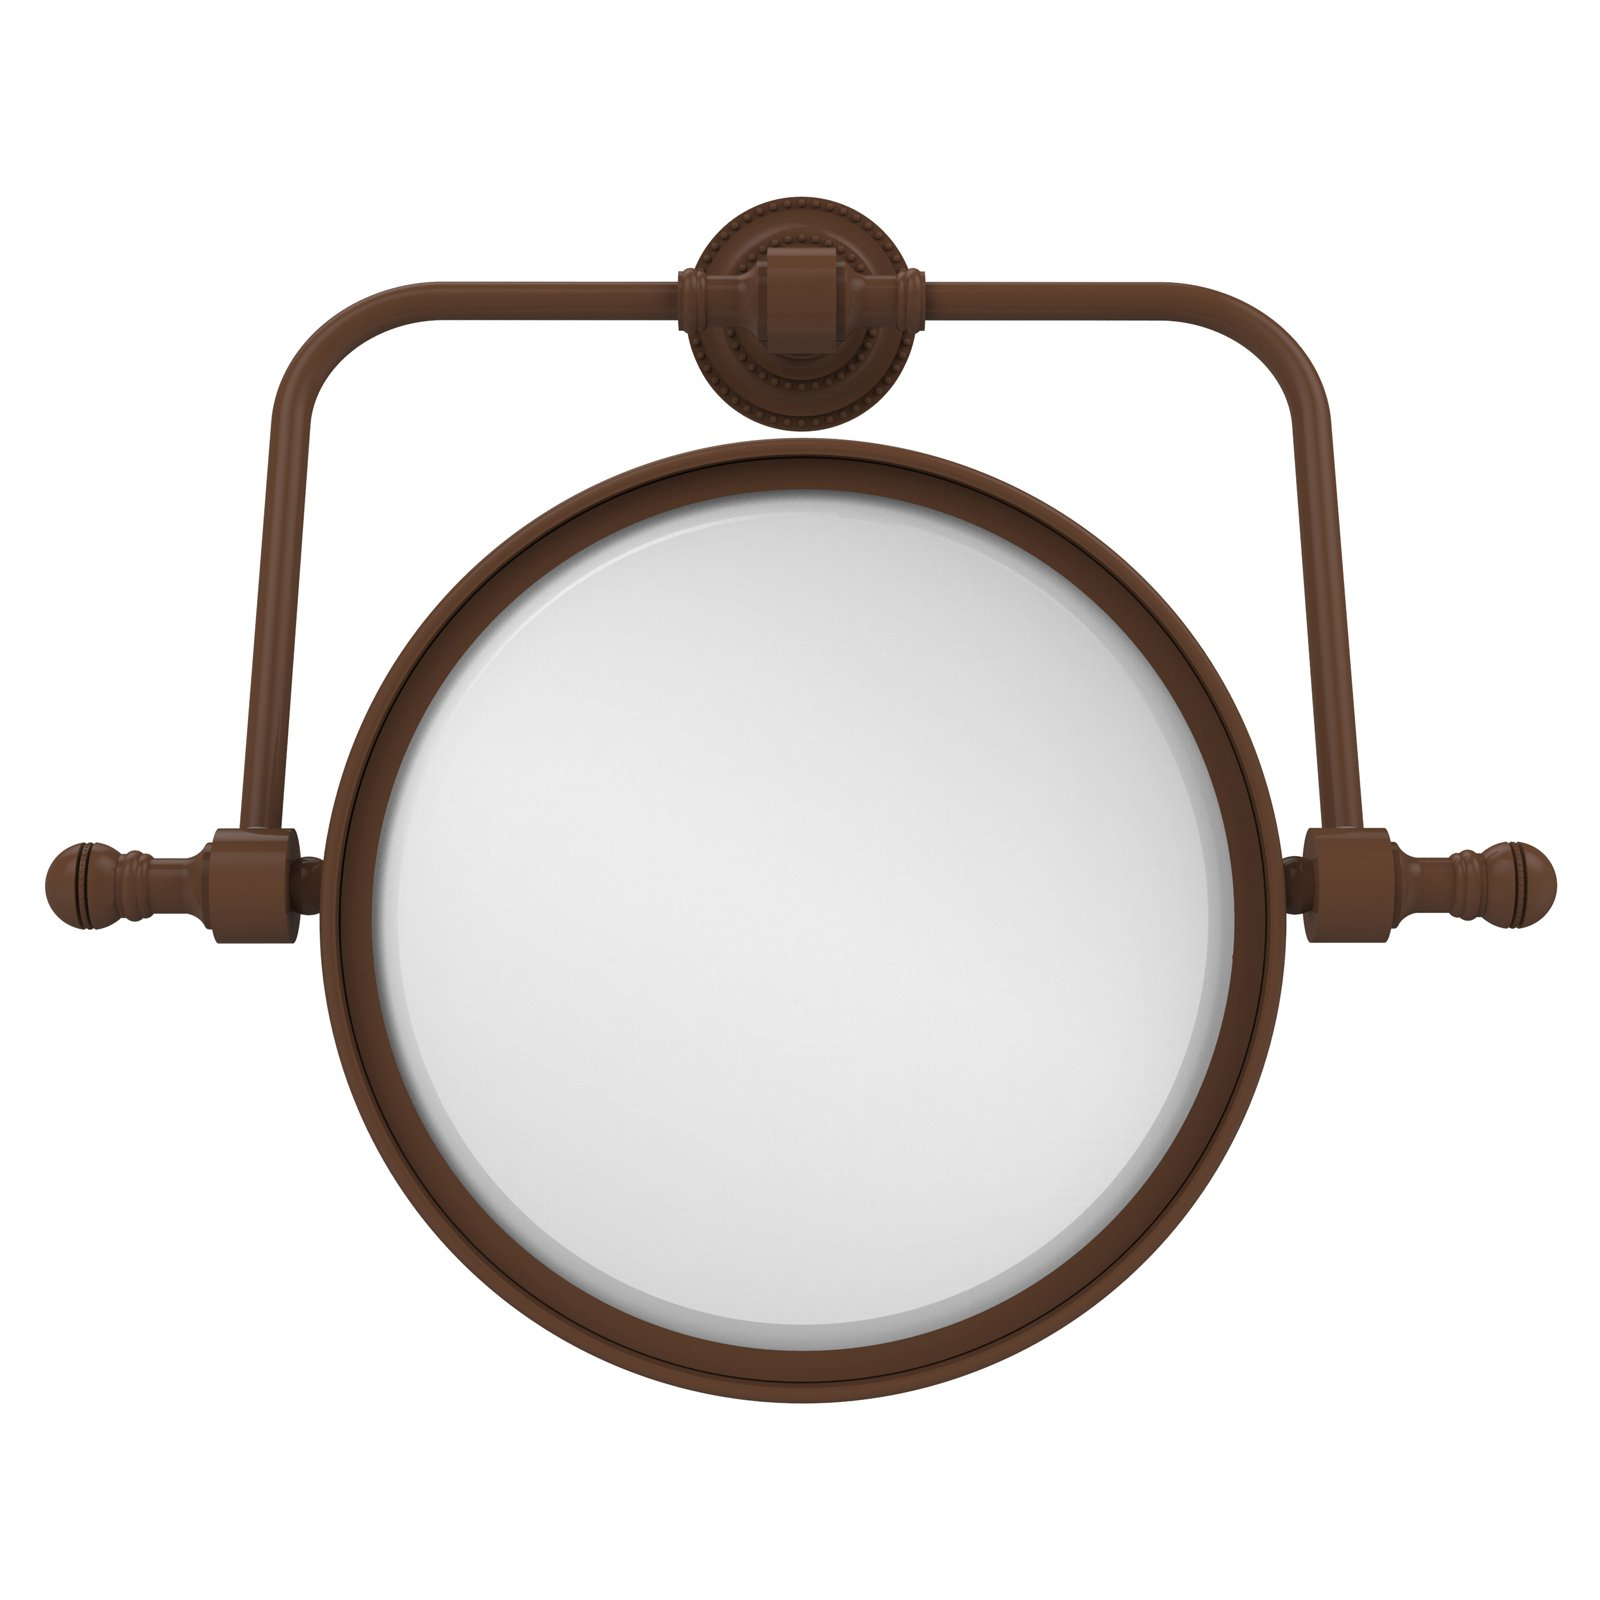 Retro Dot Collection Wall Mounted Swivel Make-Up Mirror 8 Inch Diameter with 5X Magnification